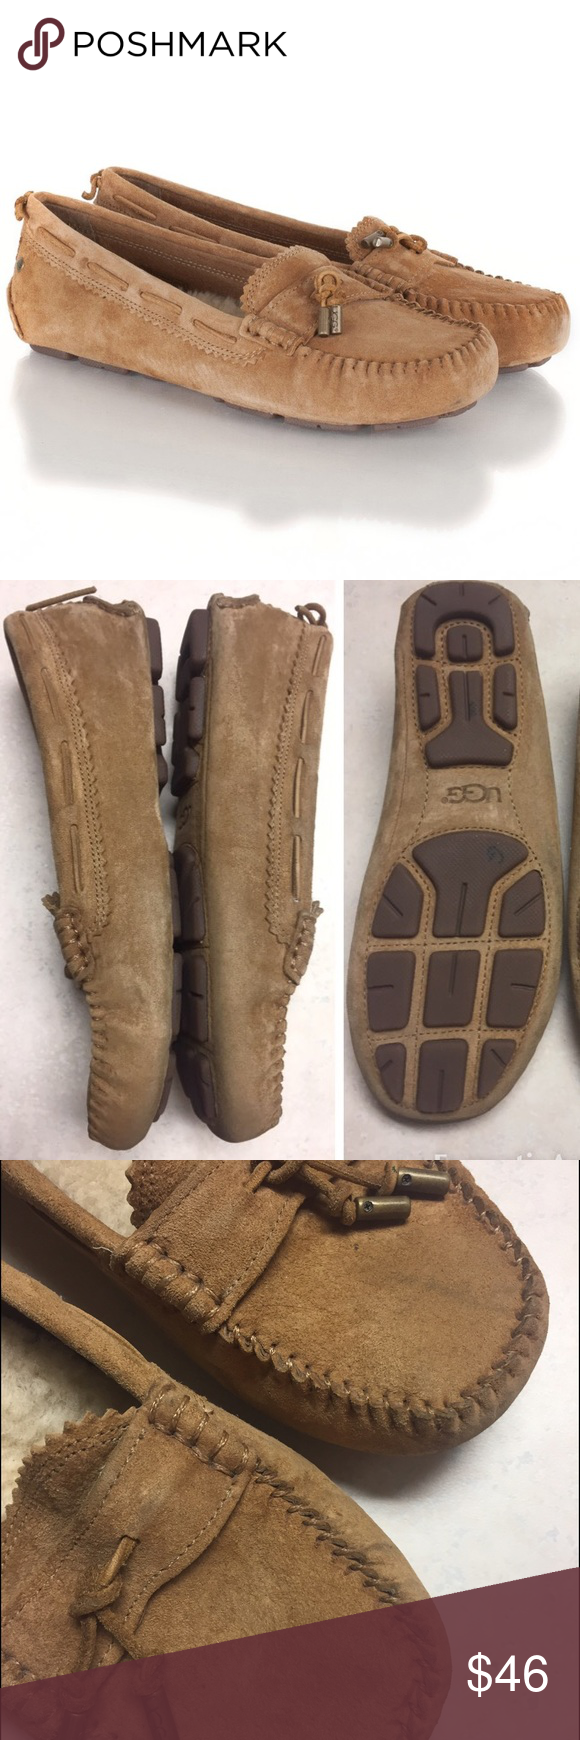 UGG Loafers UGG loafers in wonderful condition.  A little wear on the front of the shoe but isn't noticeable when worn. Suede cleaner will make these look brand new. Make an offer. UGG Shoes Flats & Loafers